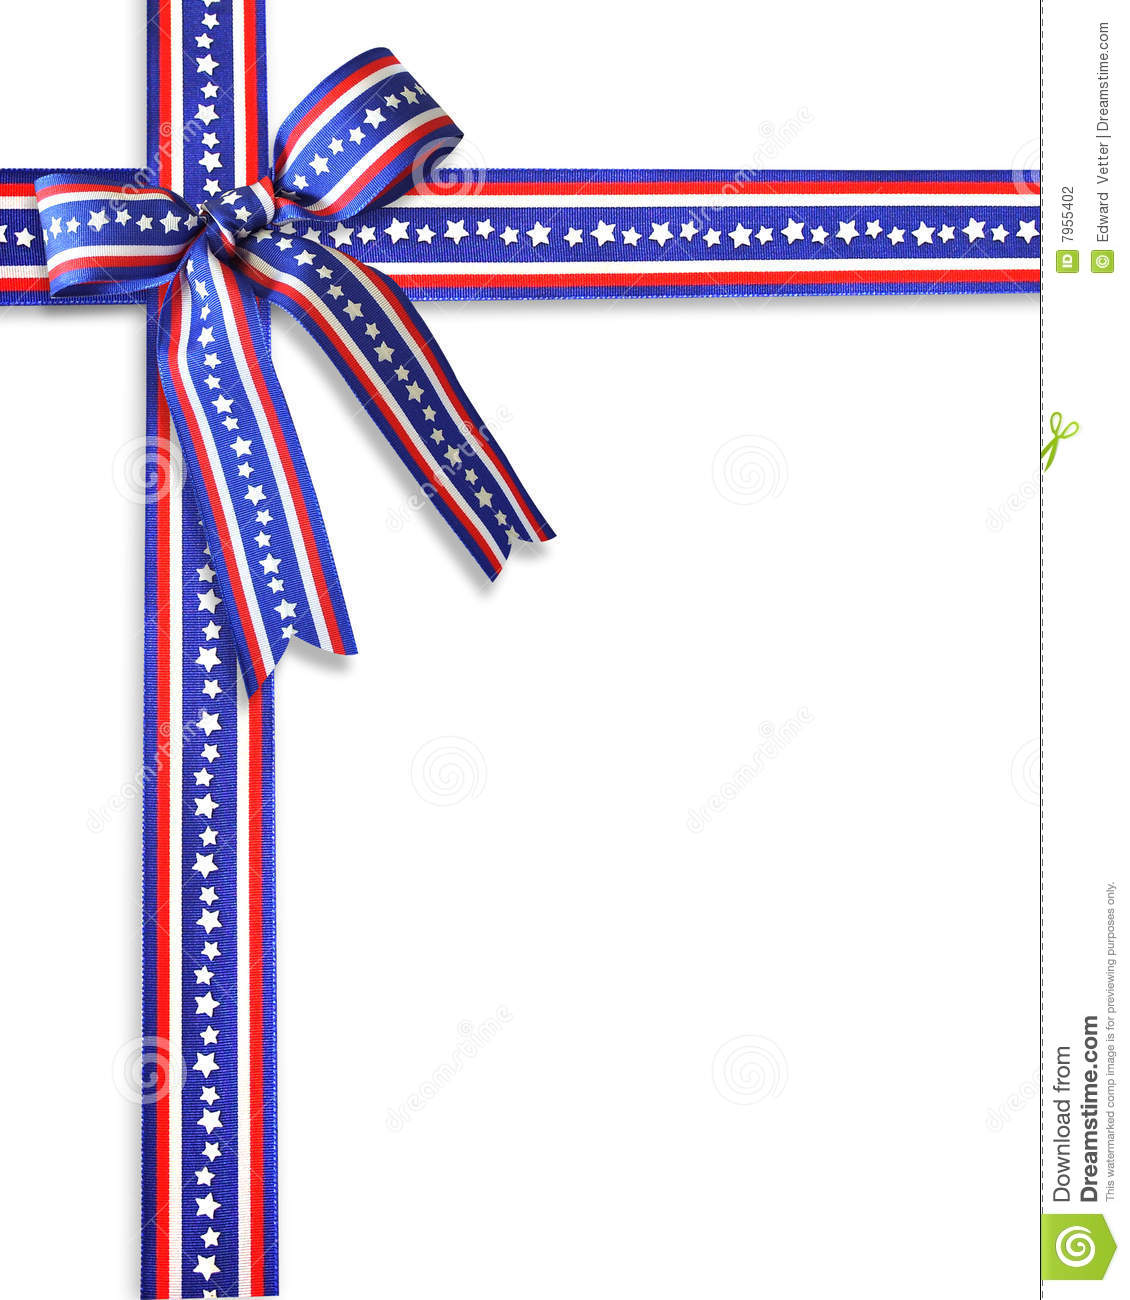 4th of july border clipart clipart panda free clipart images rh clipartpanda com free animated july 4th clipart free july 4th clipart downloads